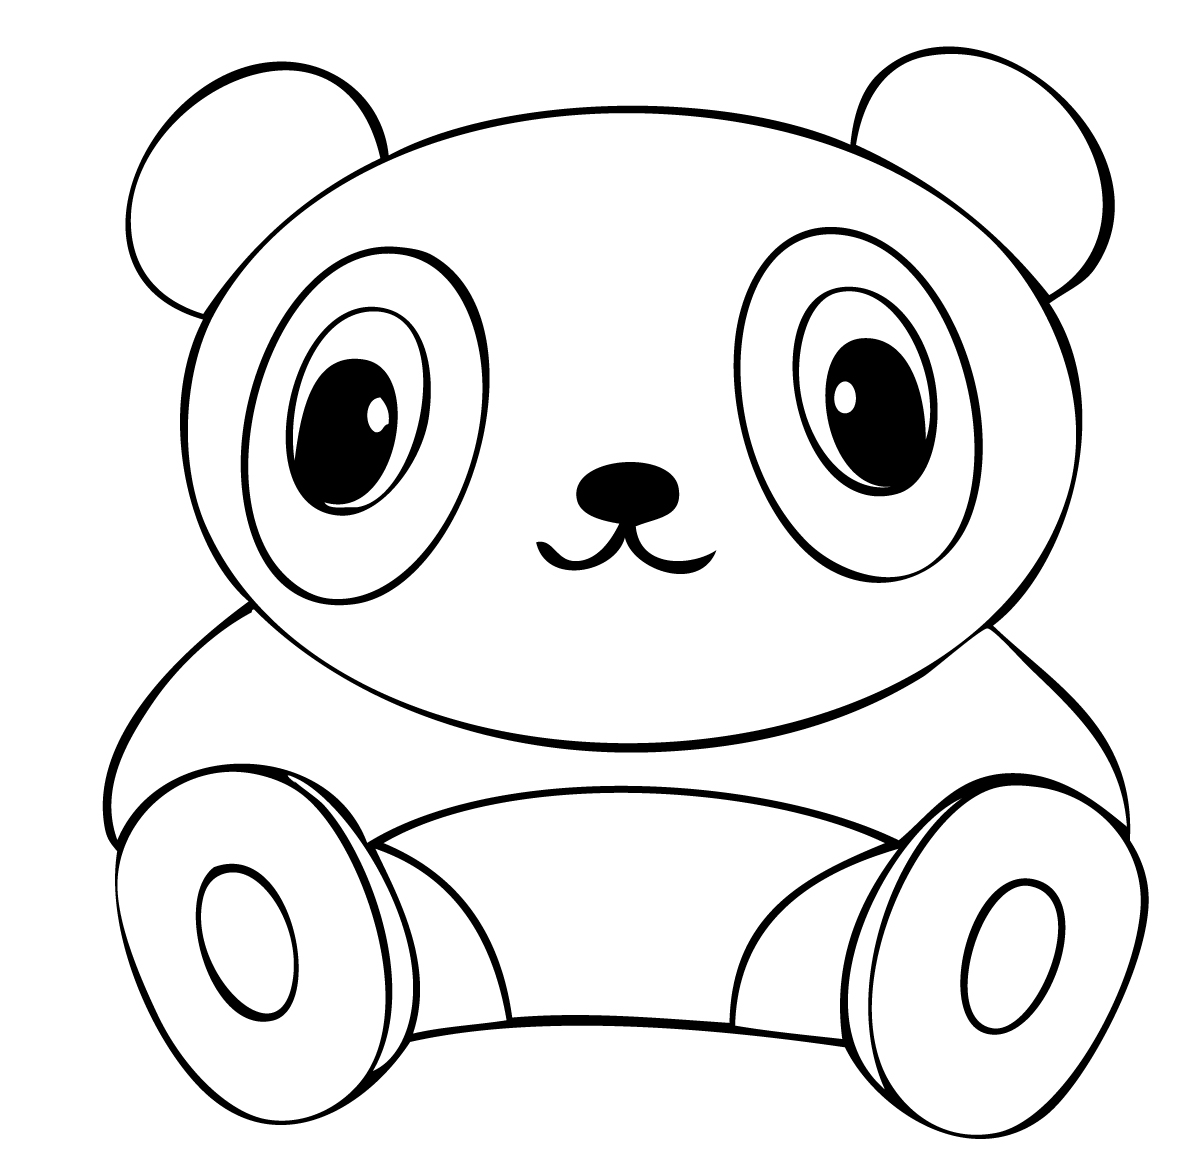 1200x1170 Cute Baby Panda Coloring Pages